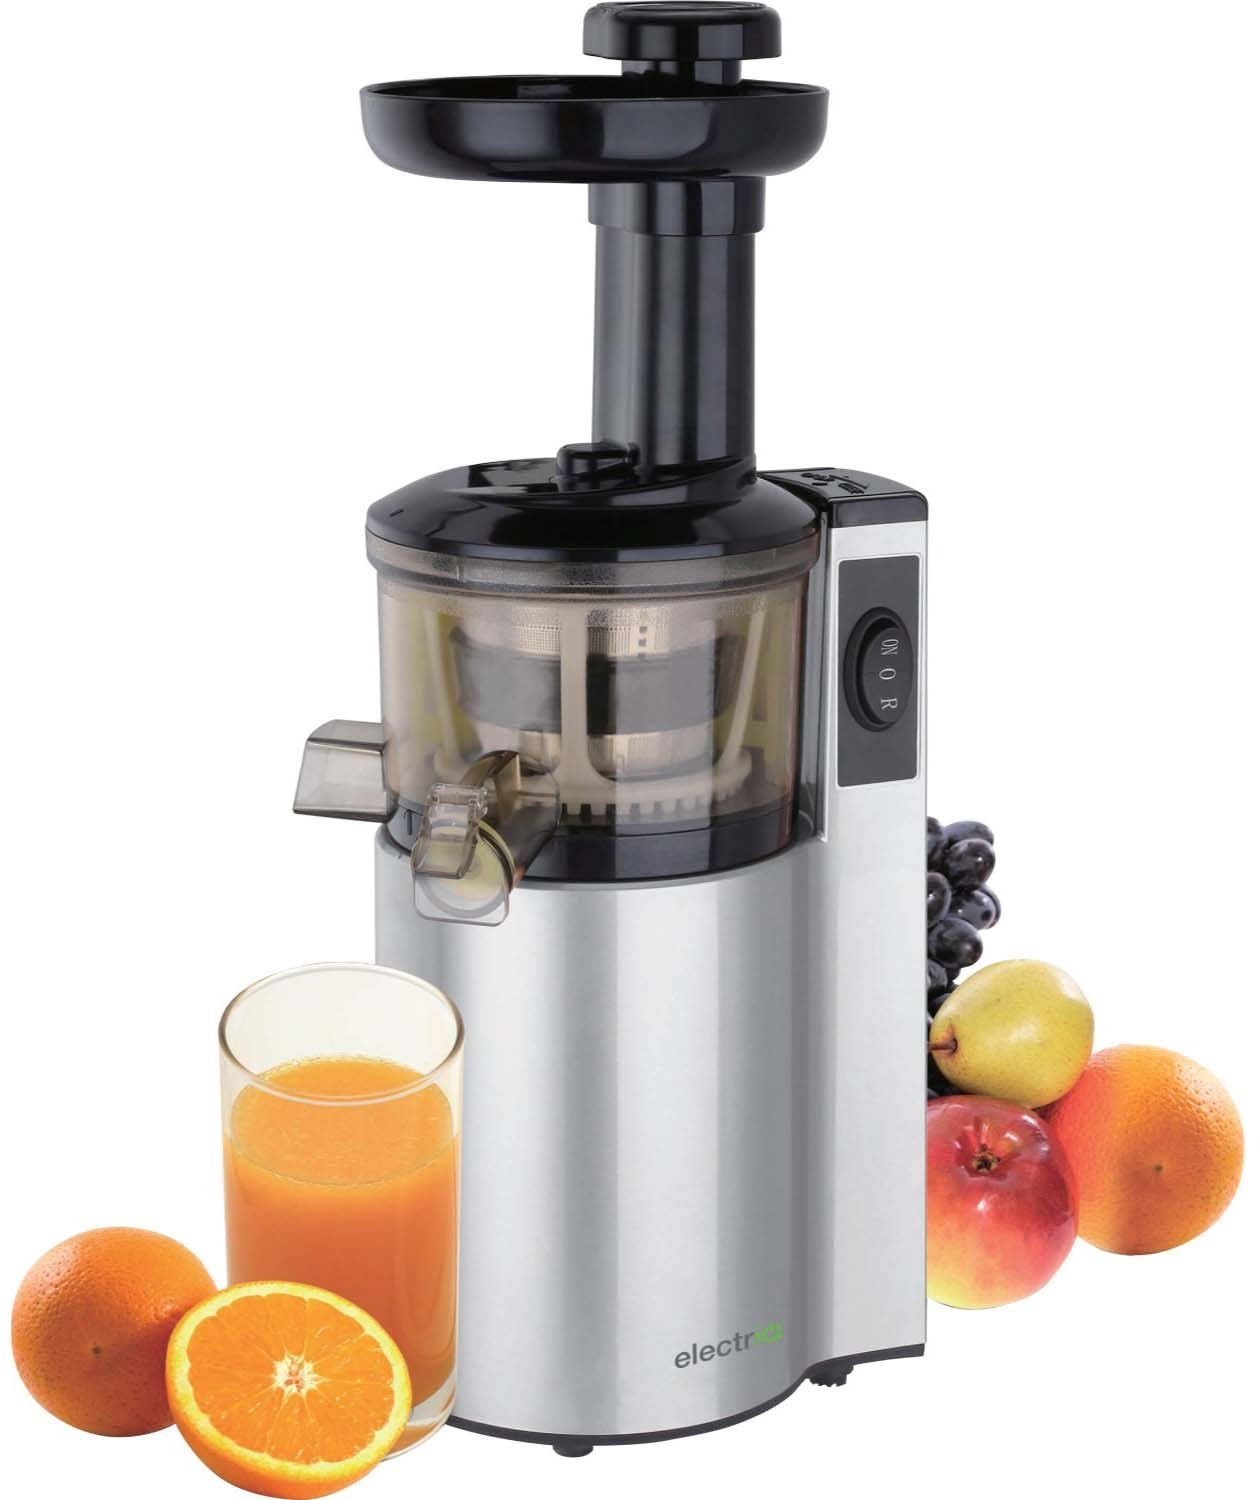 Domoclip Premium Slow Juicer : ElectriQ Premium Slow Juicer great for cold pressed Greens Juices and Smoothies - BPA Free ...